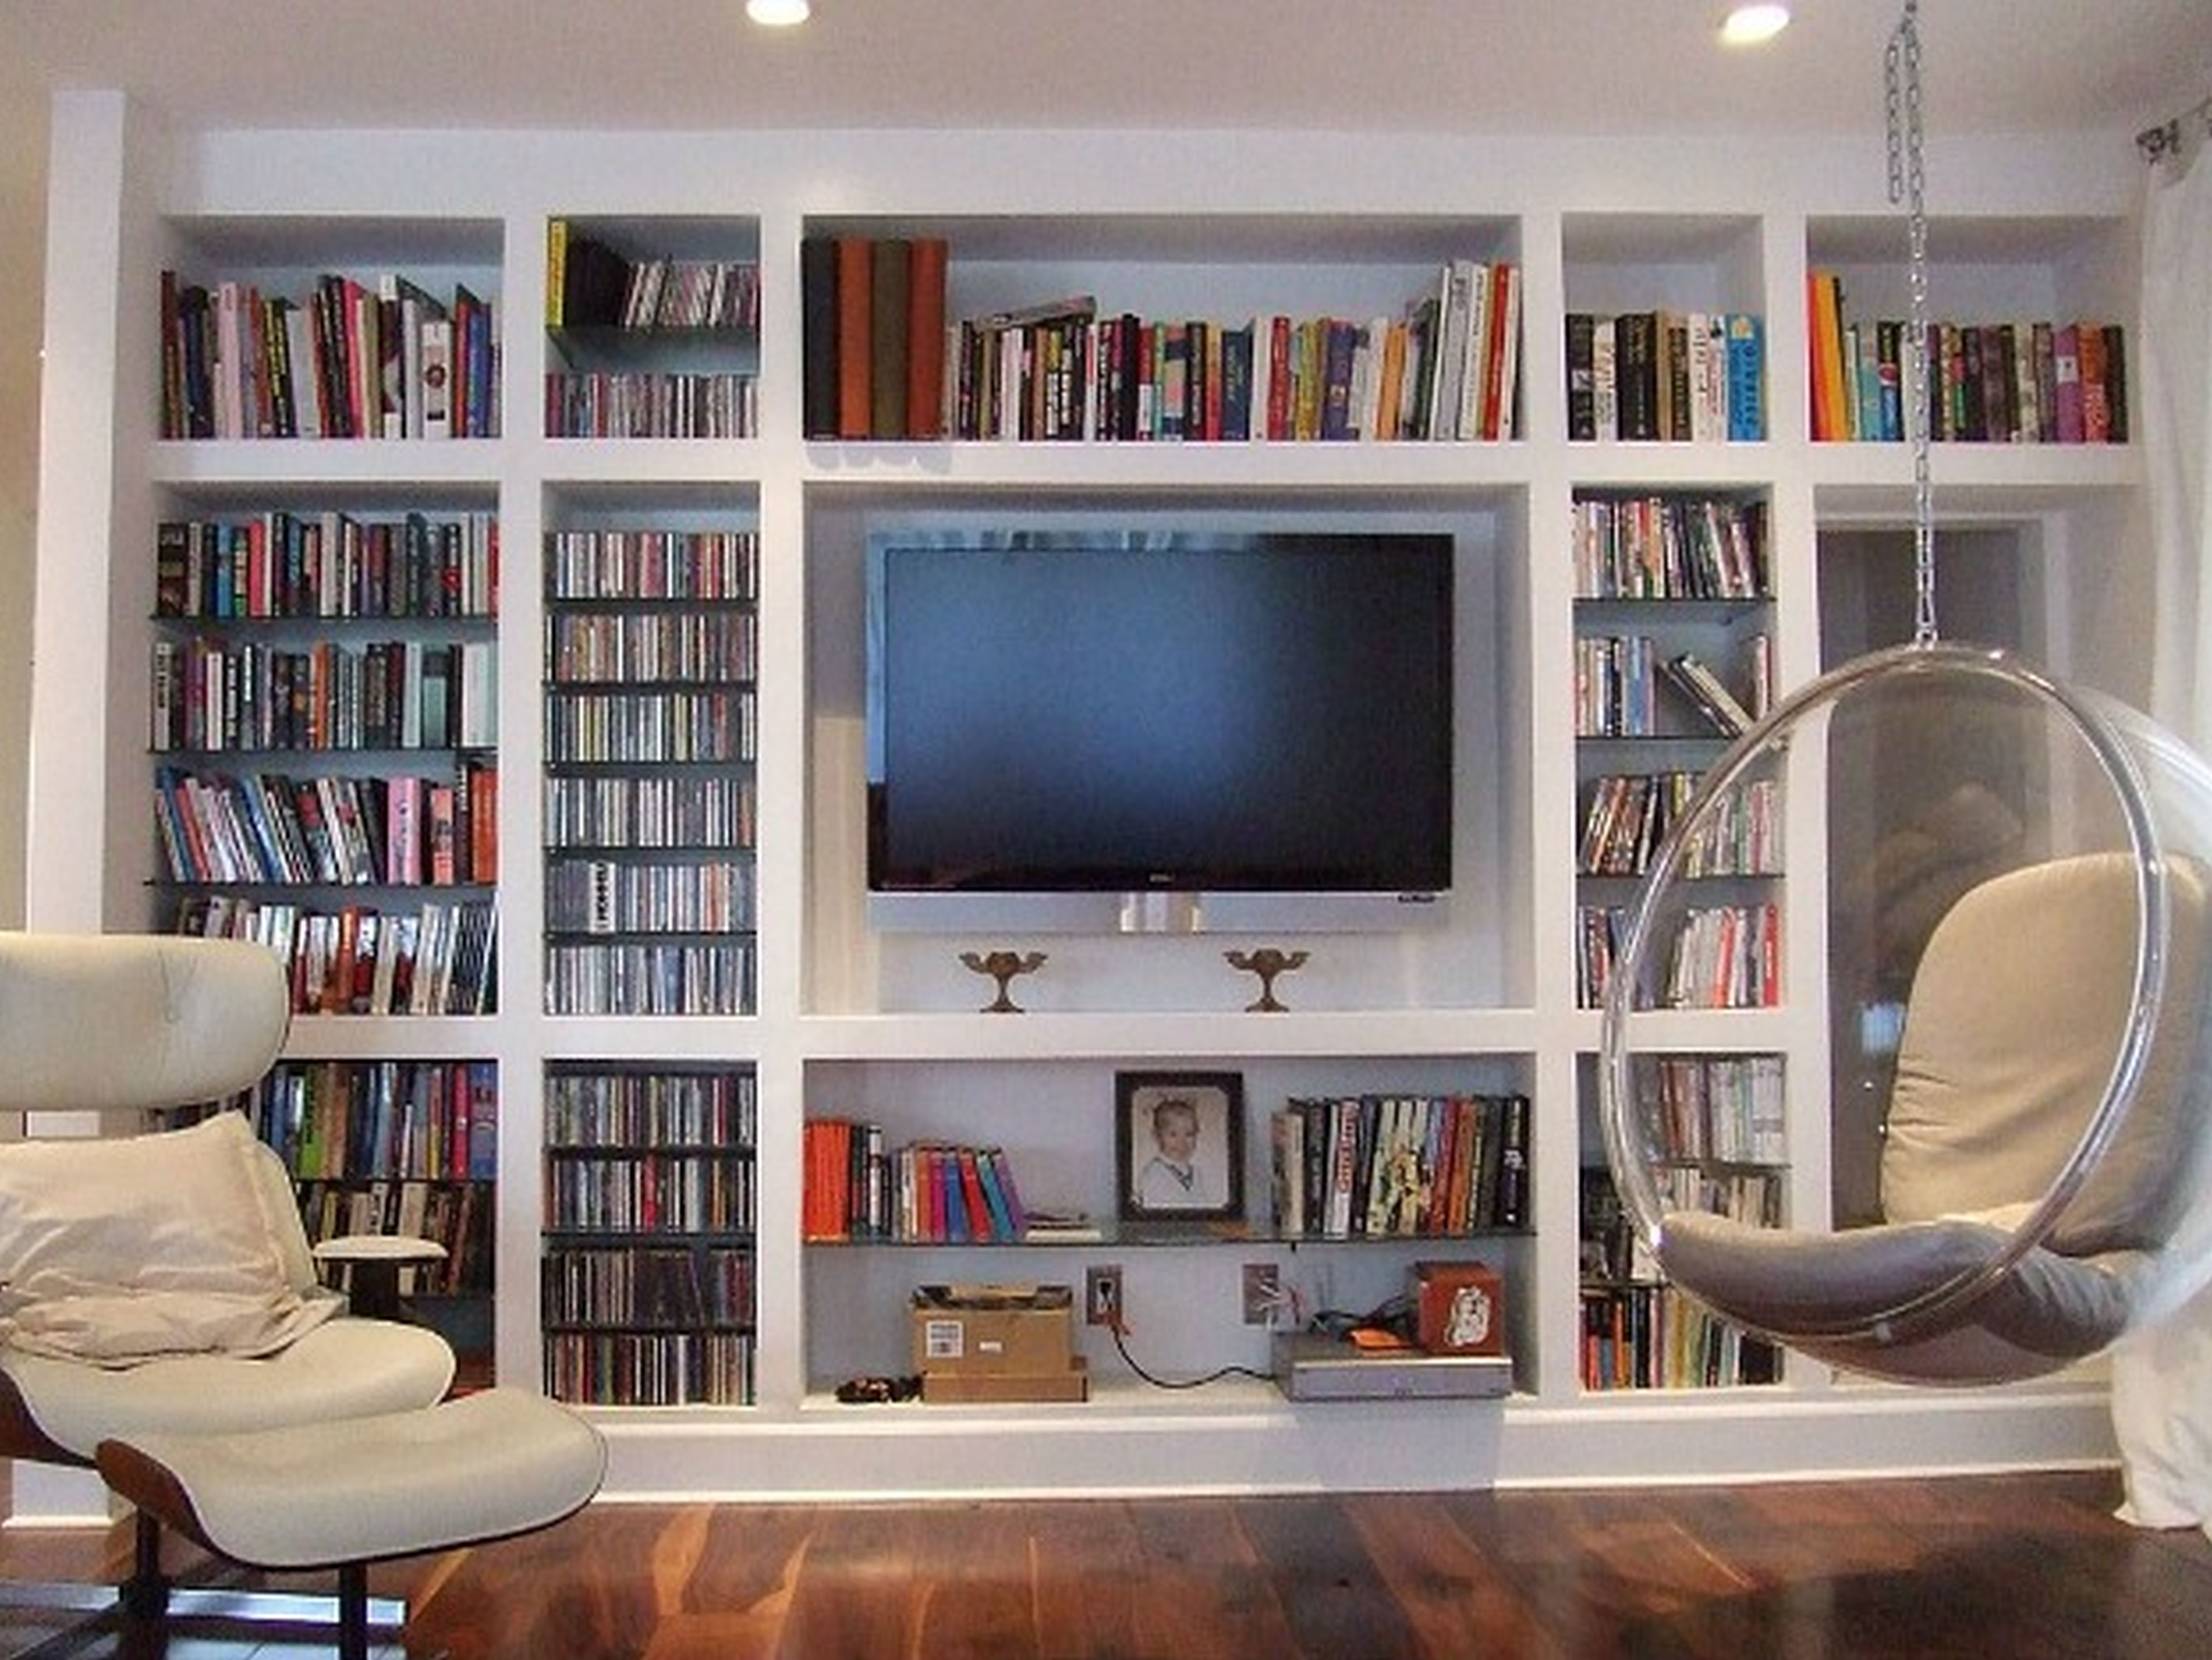 Preferred Tv Book Shelf Within Unique Tv Stand With Bookshelves For Your Home Design Ideas Space (View 1 of 15)